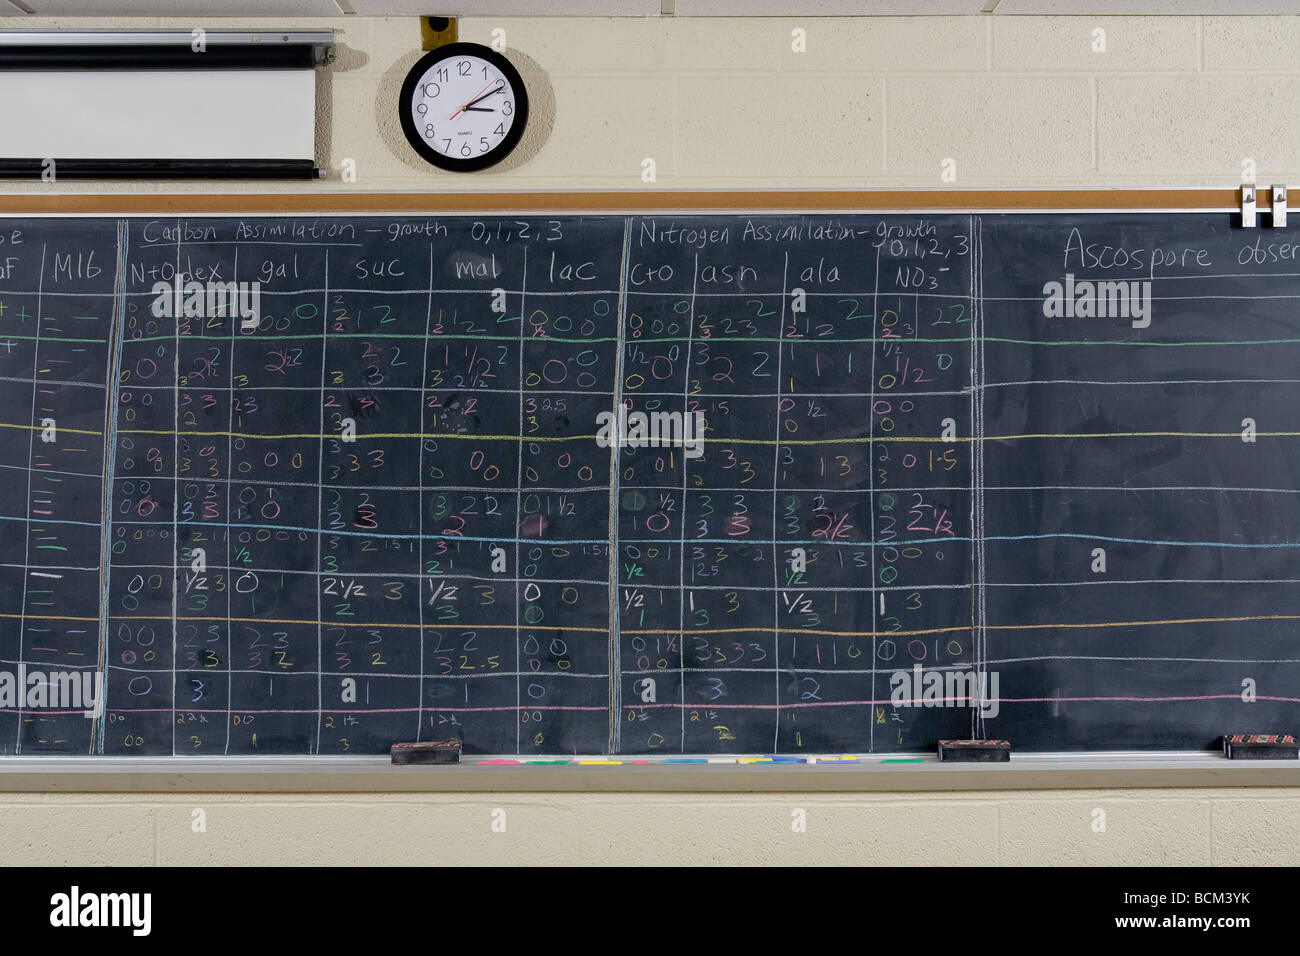 Chalkboard full of scientific equations - Stock Image